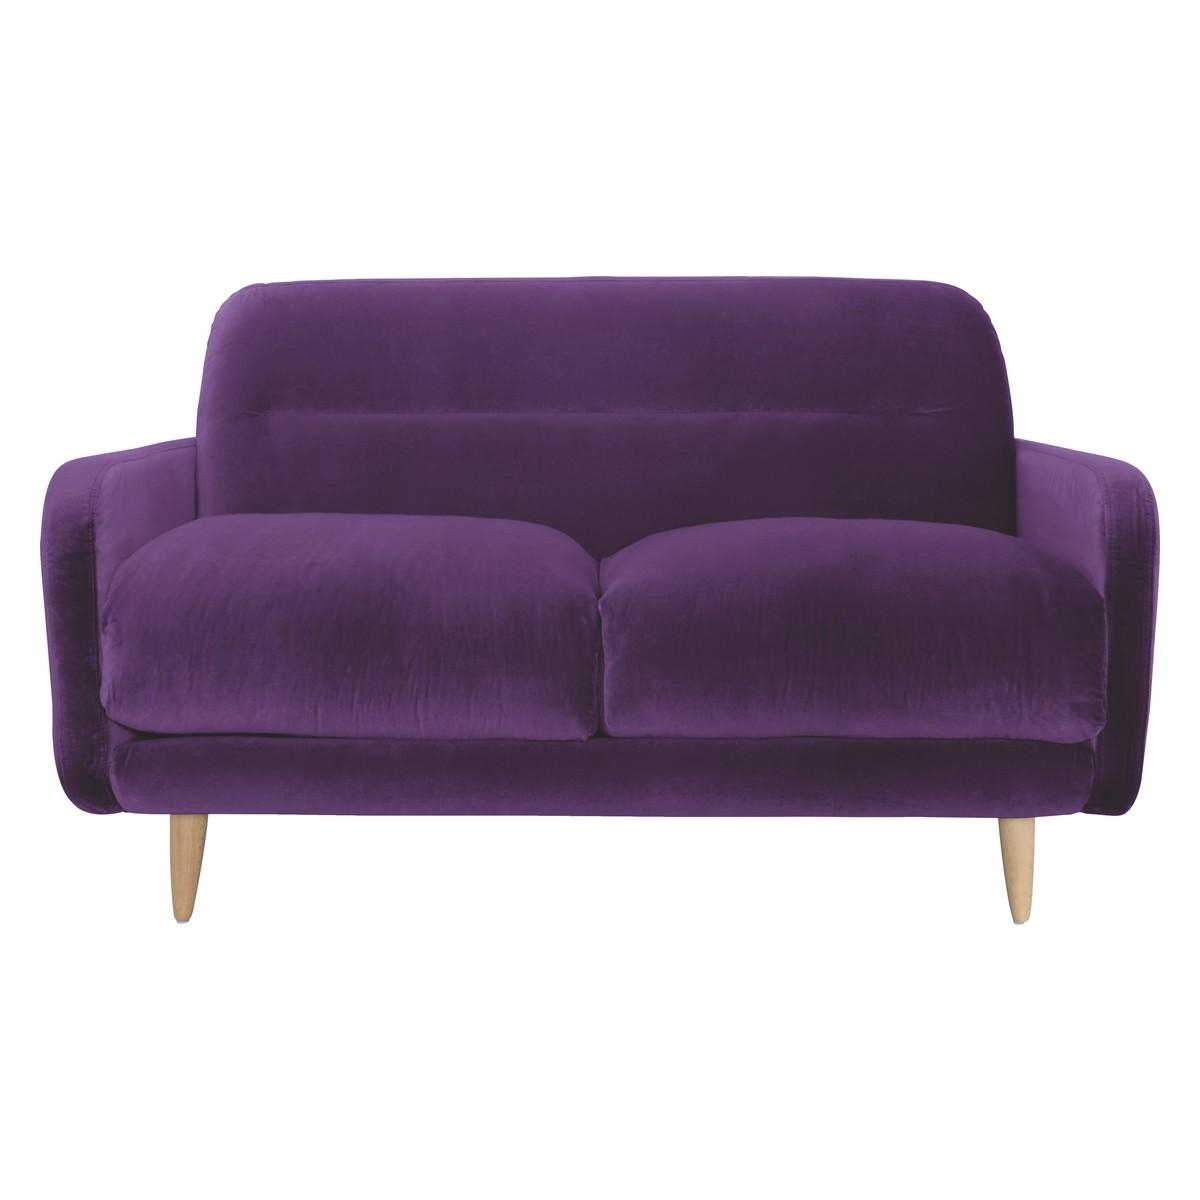 Abel Purple Velvet 2 Seater Sofa | Buy Now At Habitat Uk Intended For 2 Seater Sofas (Image 3 of 20)